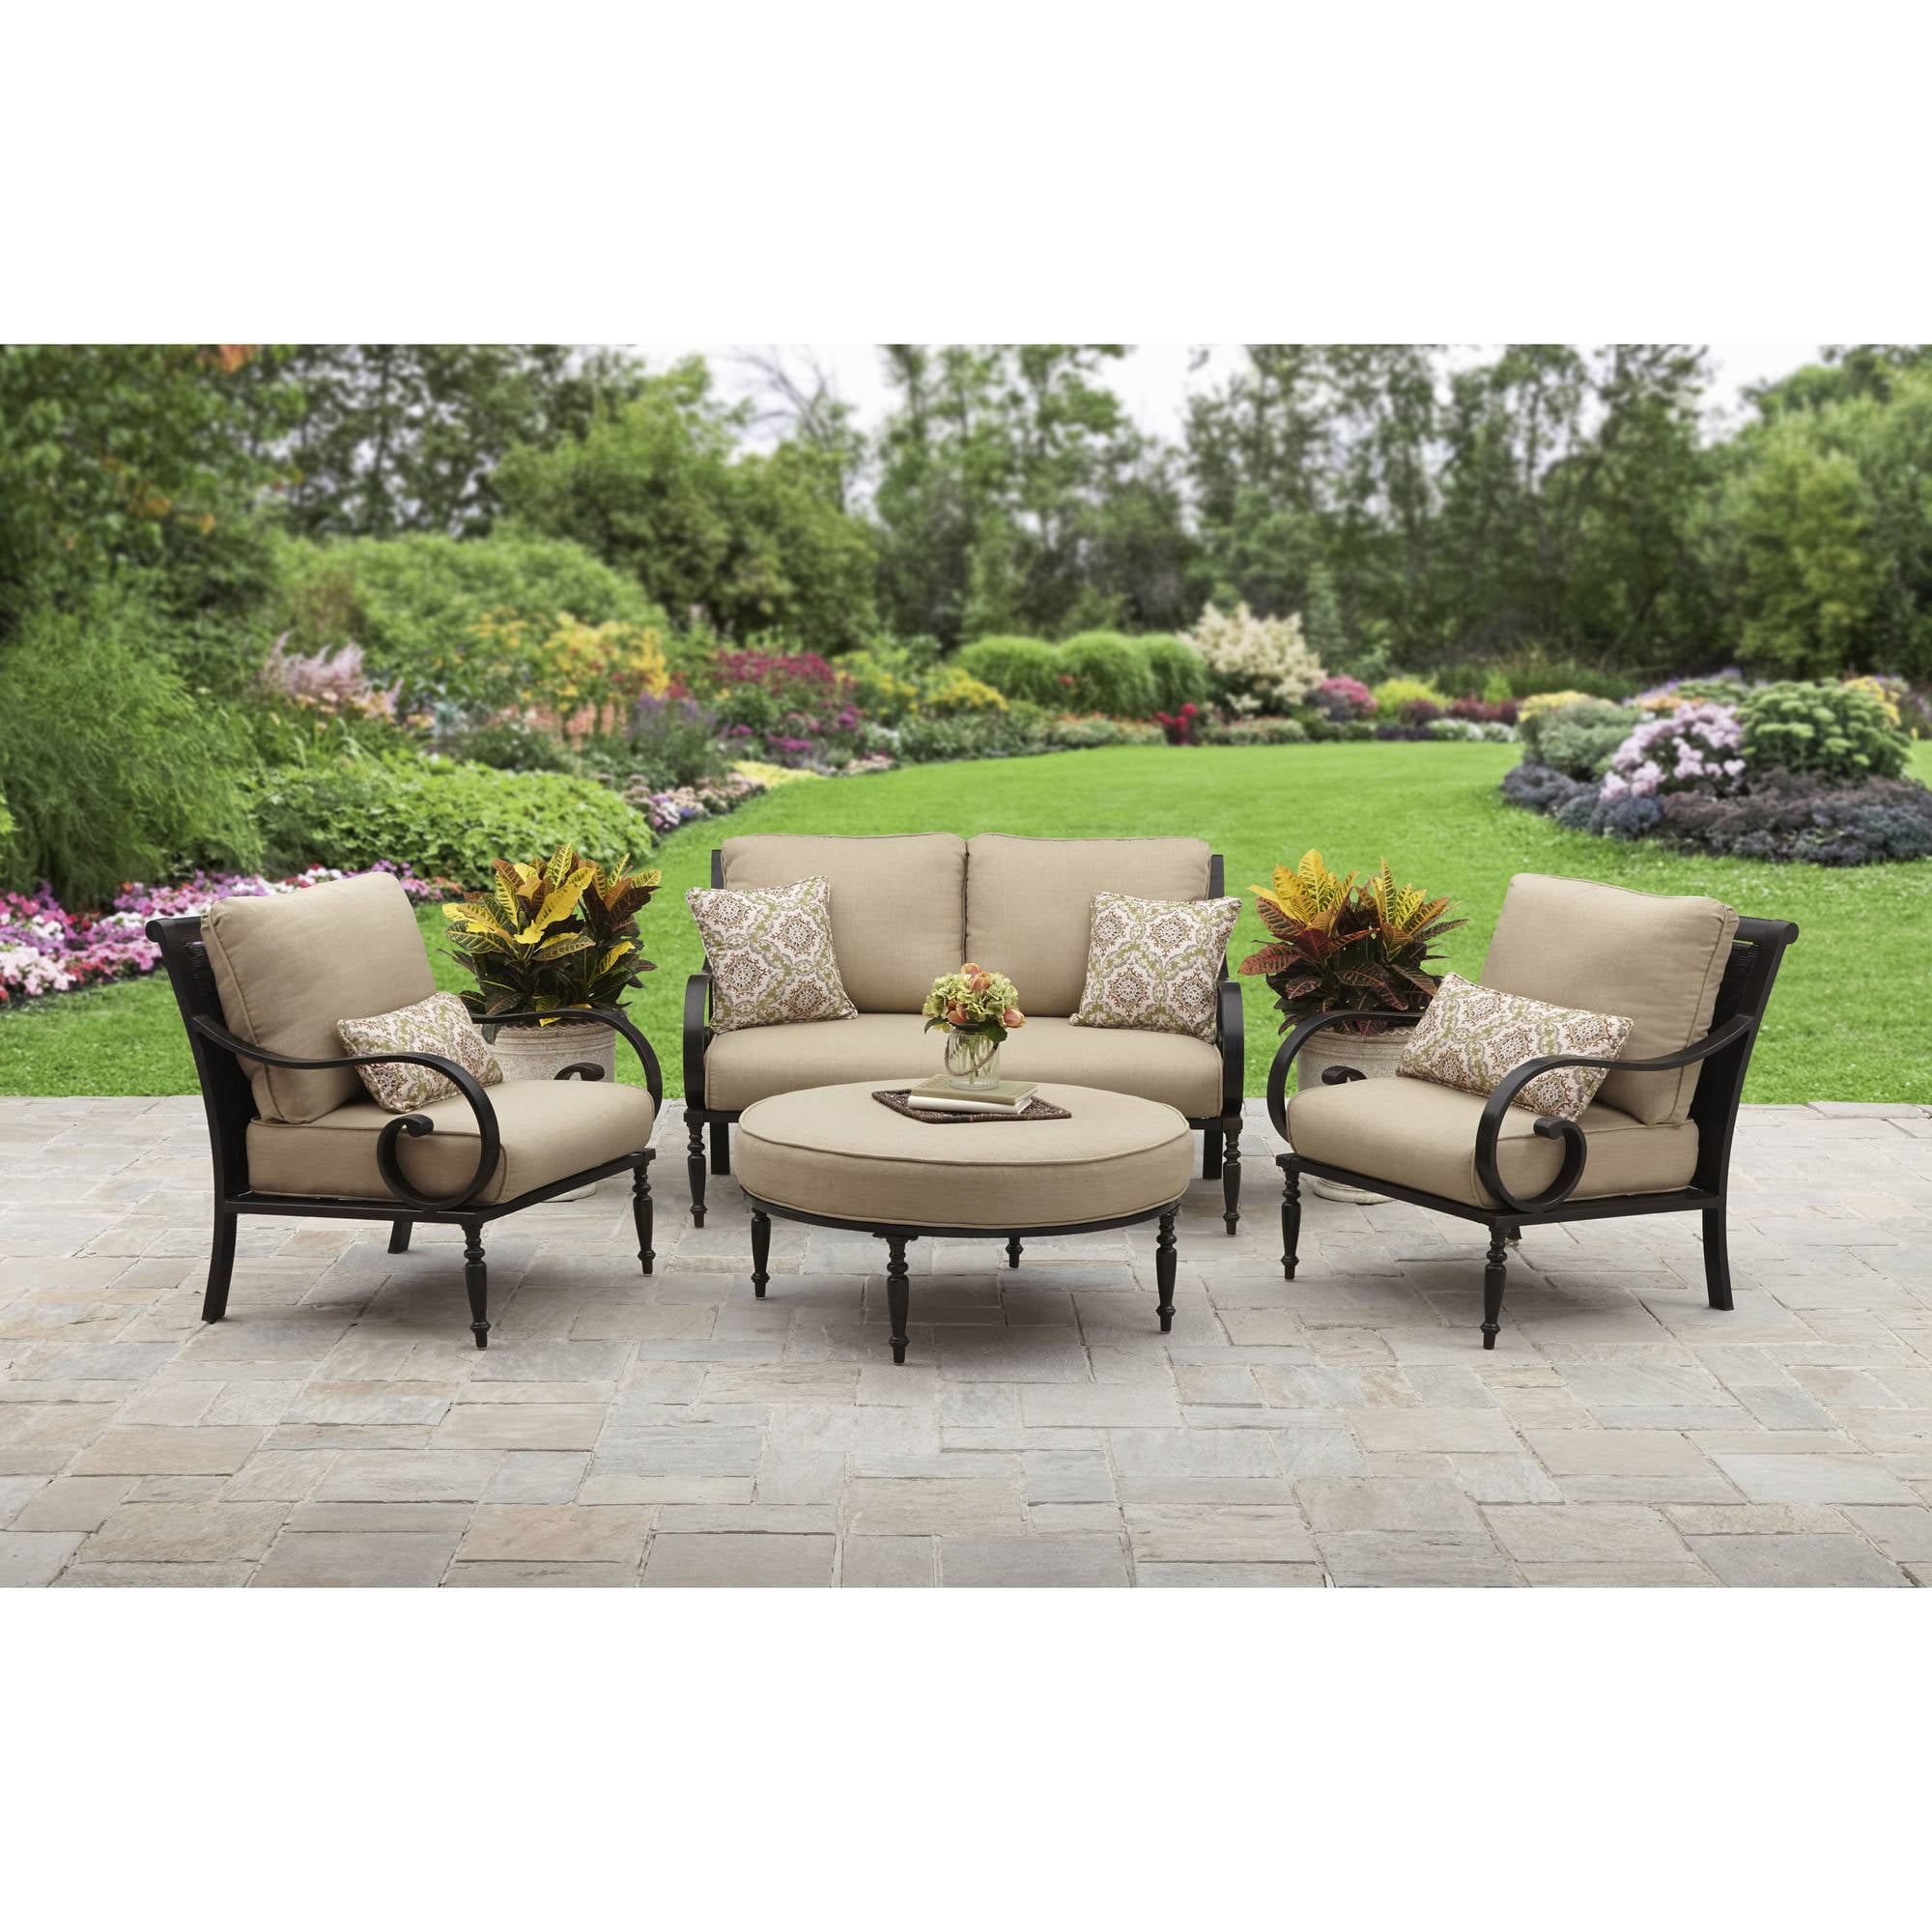 Better Homes and Gardens Englewood Heights II Aluminum 4-Piece Patio Conversation Set,... by Generic